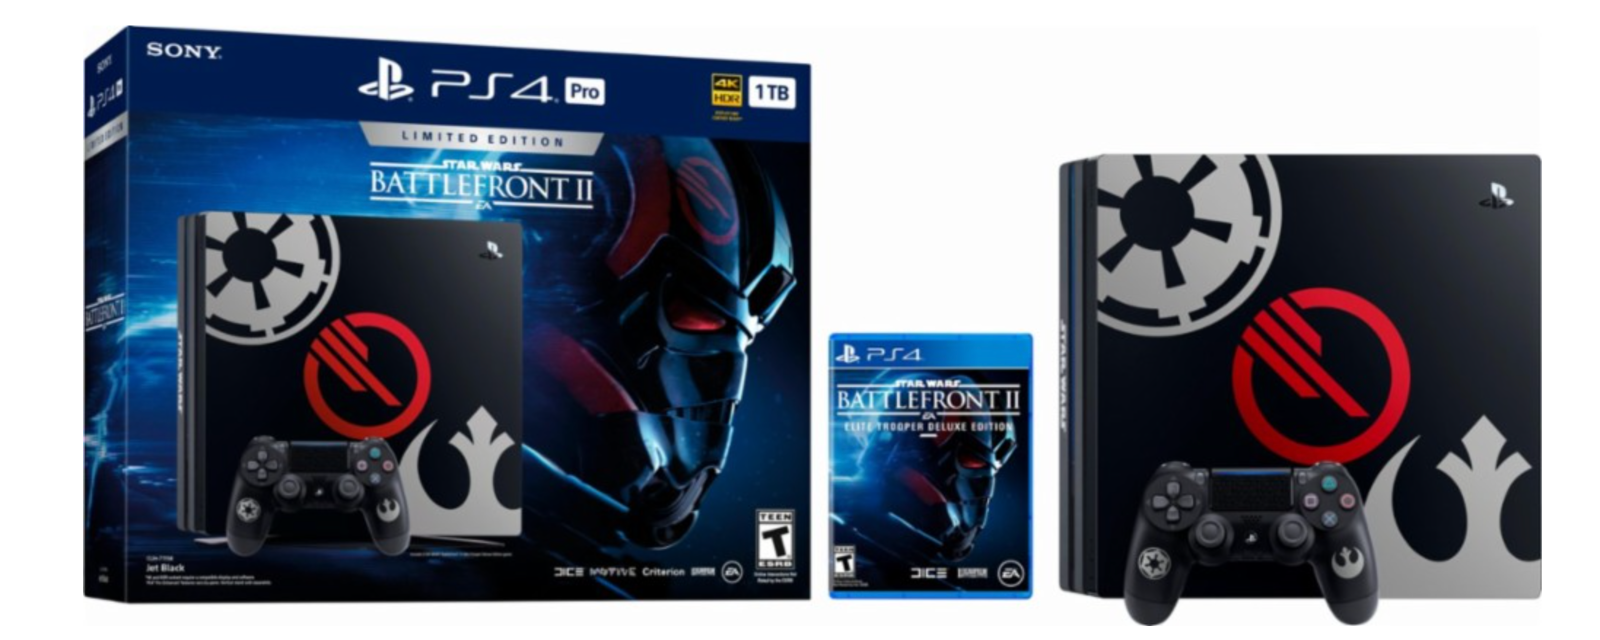 Playstation 4 - NEW Sony PlayStation 4 Pro PS4 Pro STAR WARS: Battlefront II Limited Edition 1TB